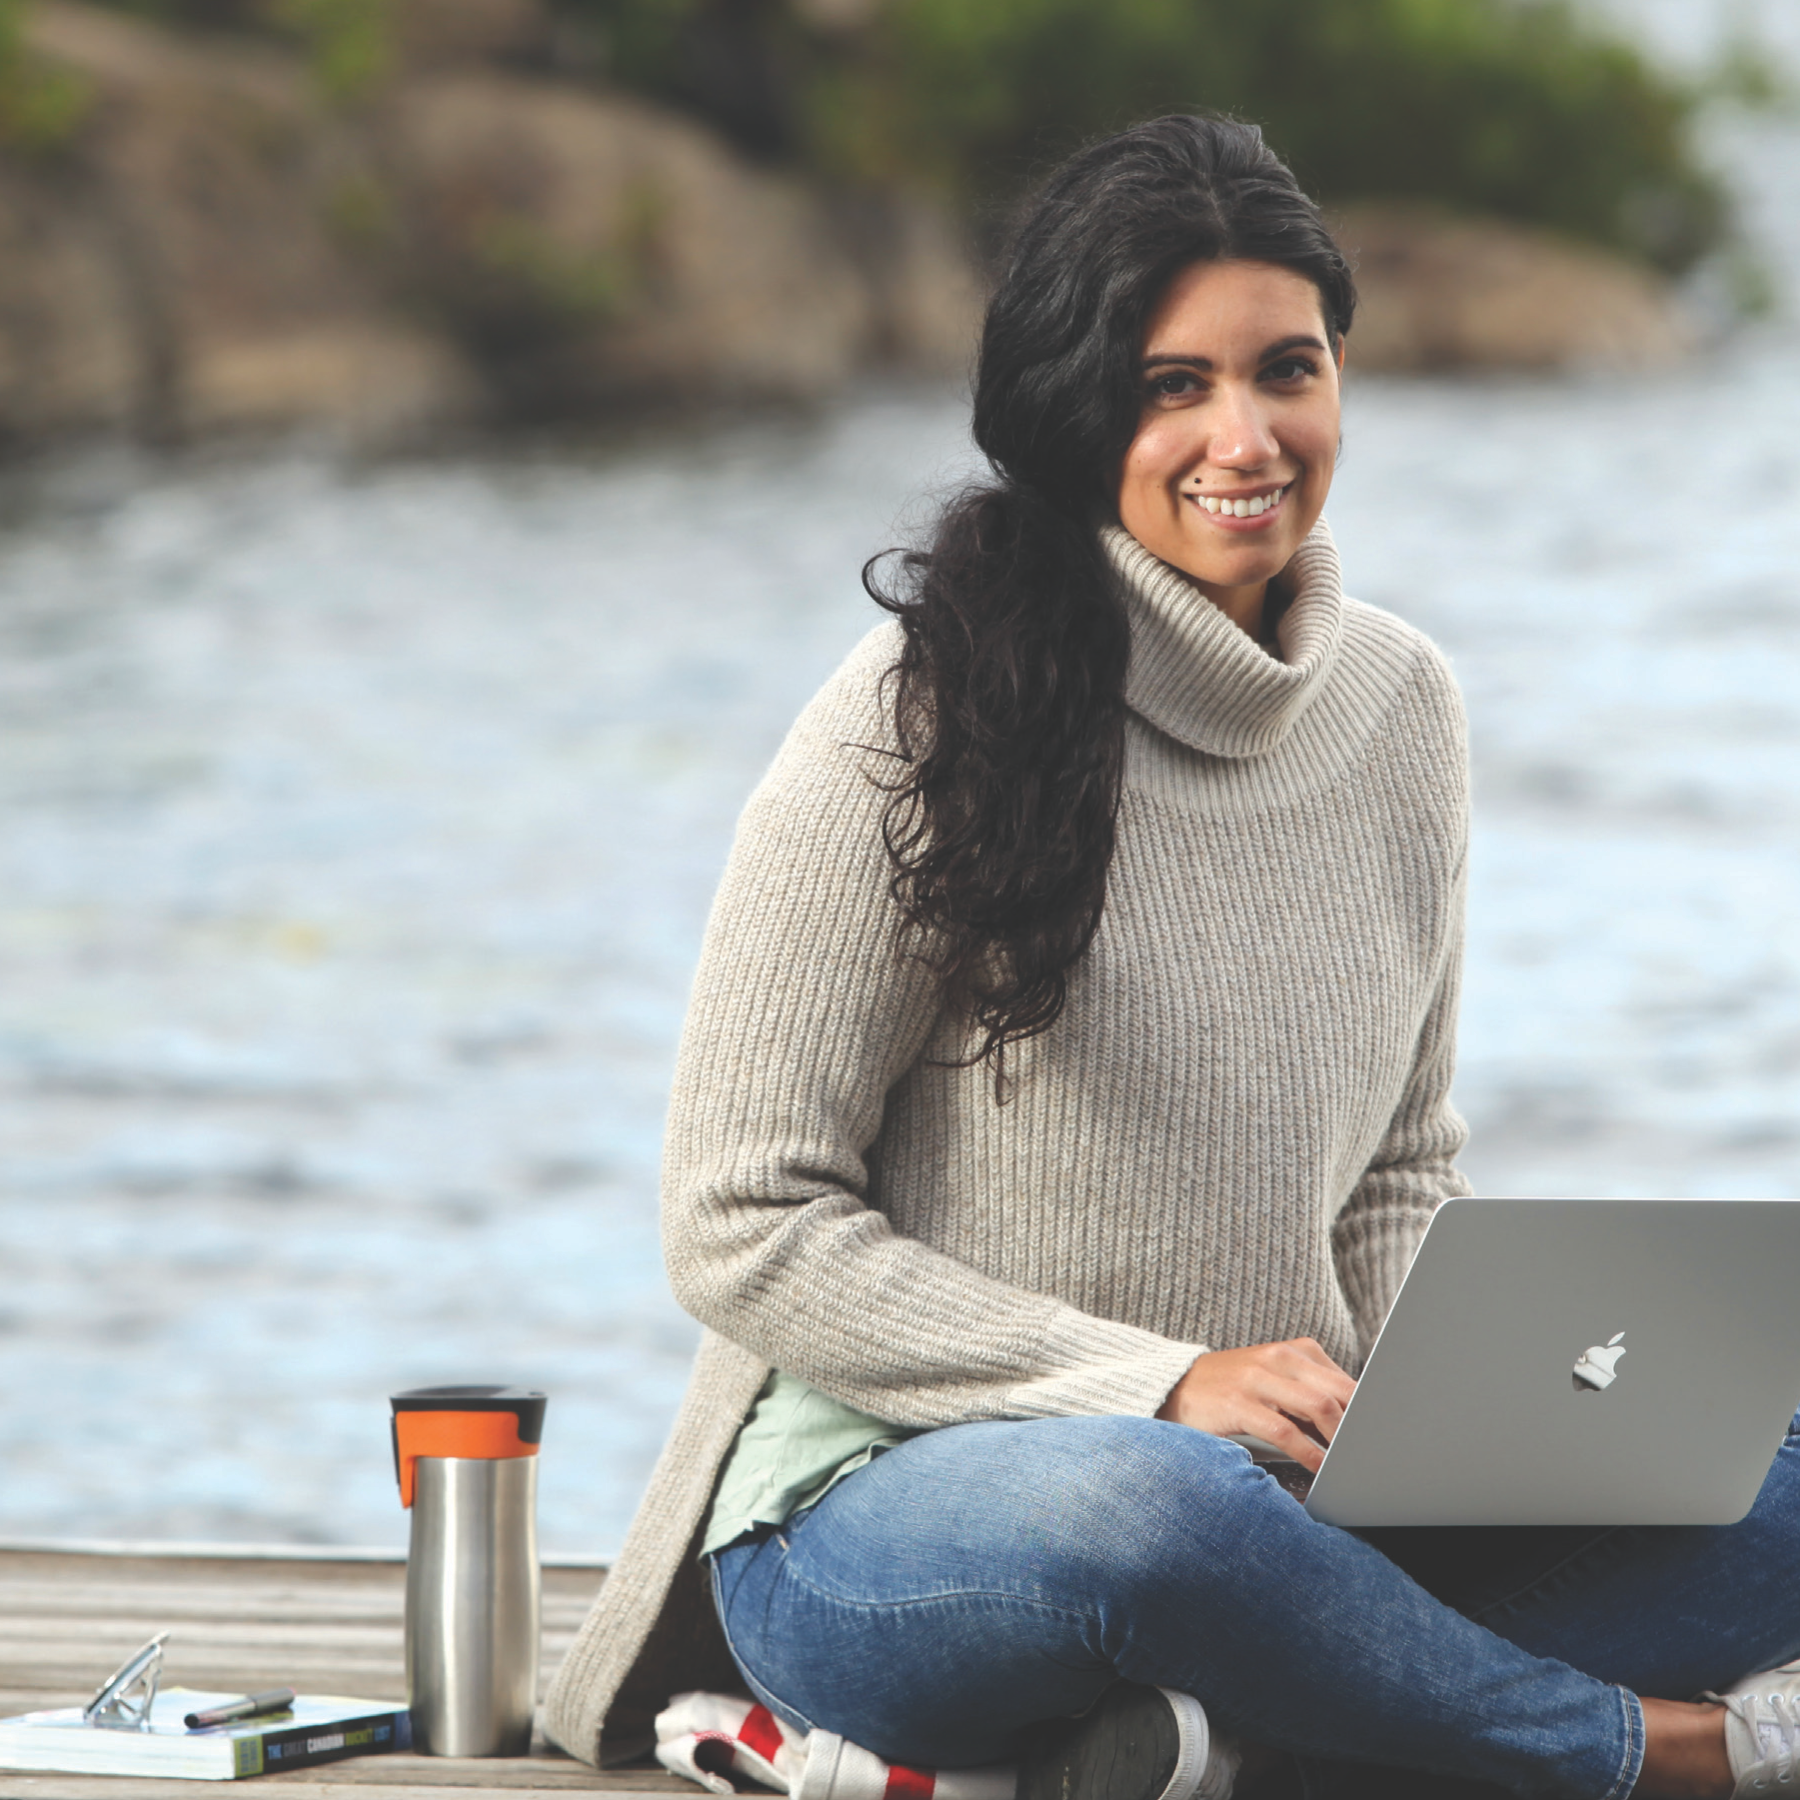 Woman sitting on a dock. She has a metal coffee container and a laptop. She is smiling.